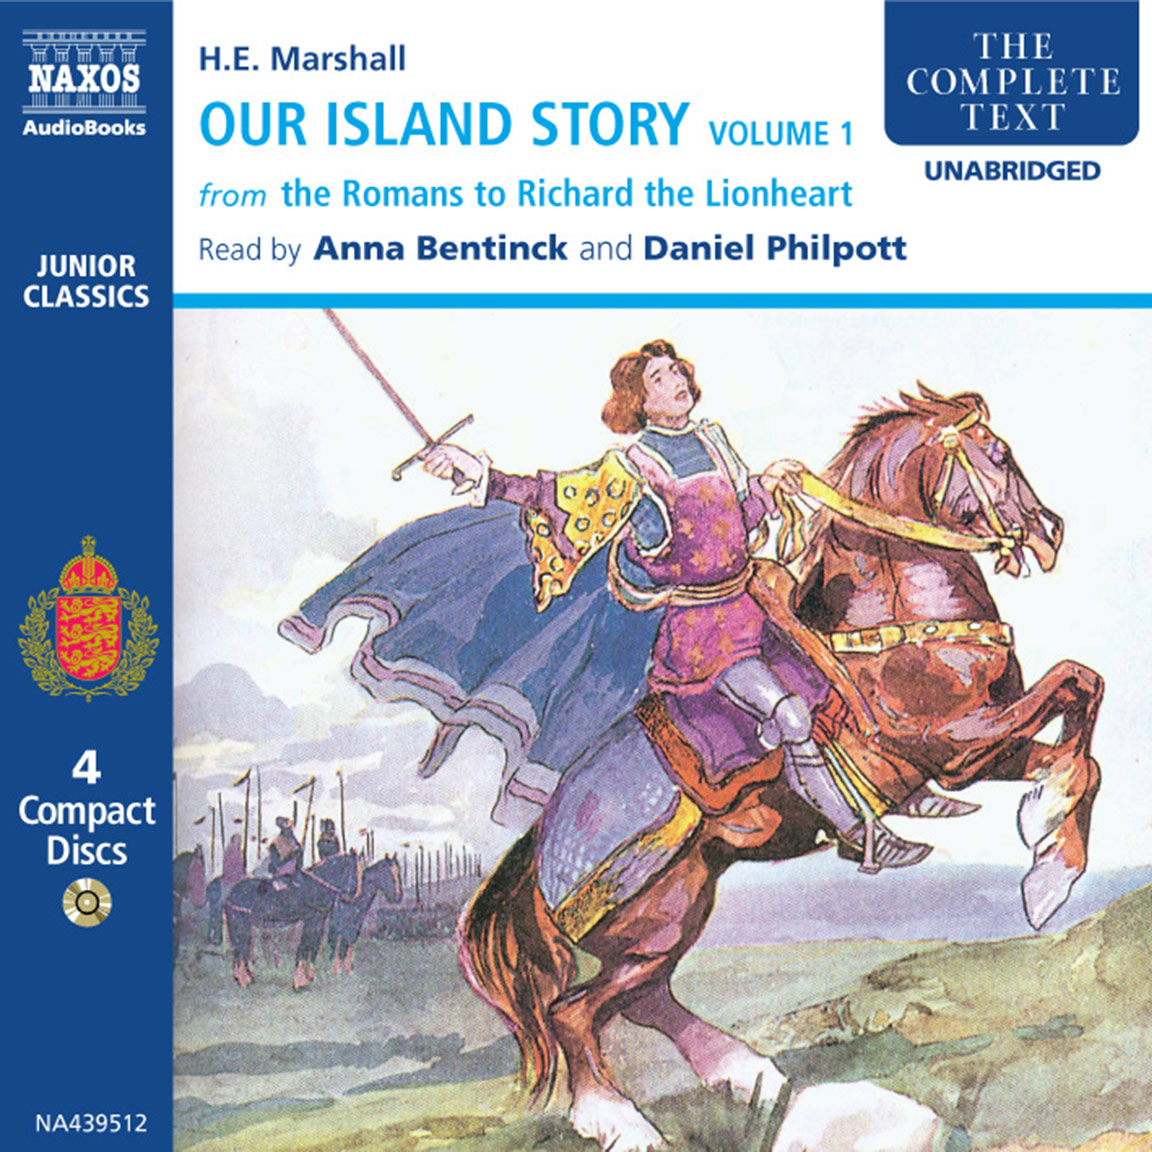 Our Island Story – Volume 1 (unabridged) – Naxos AudioBooks